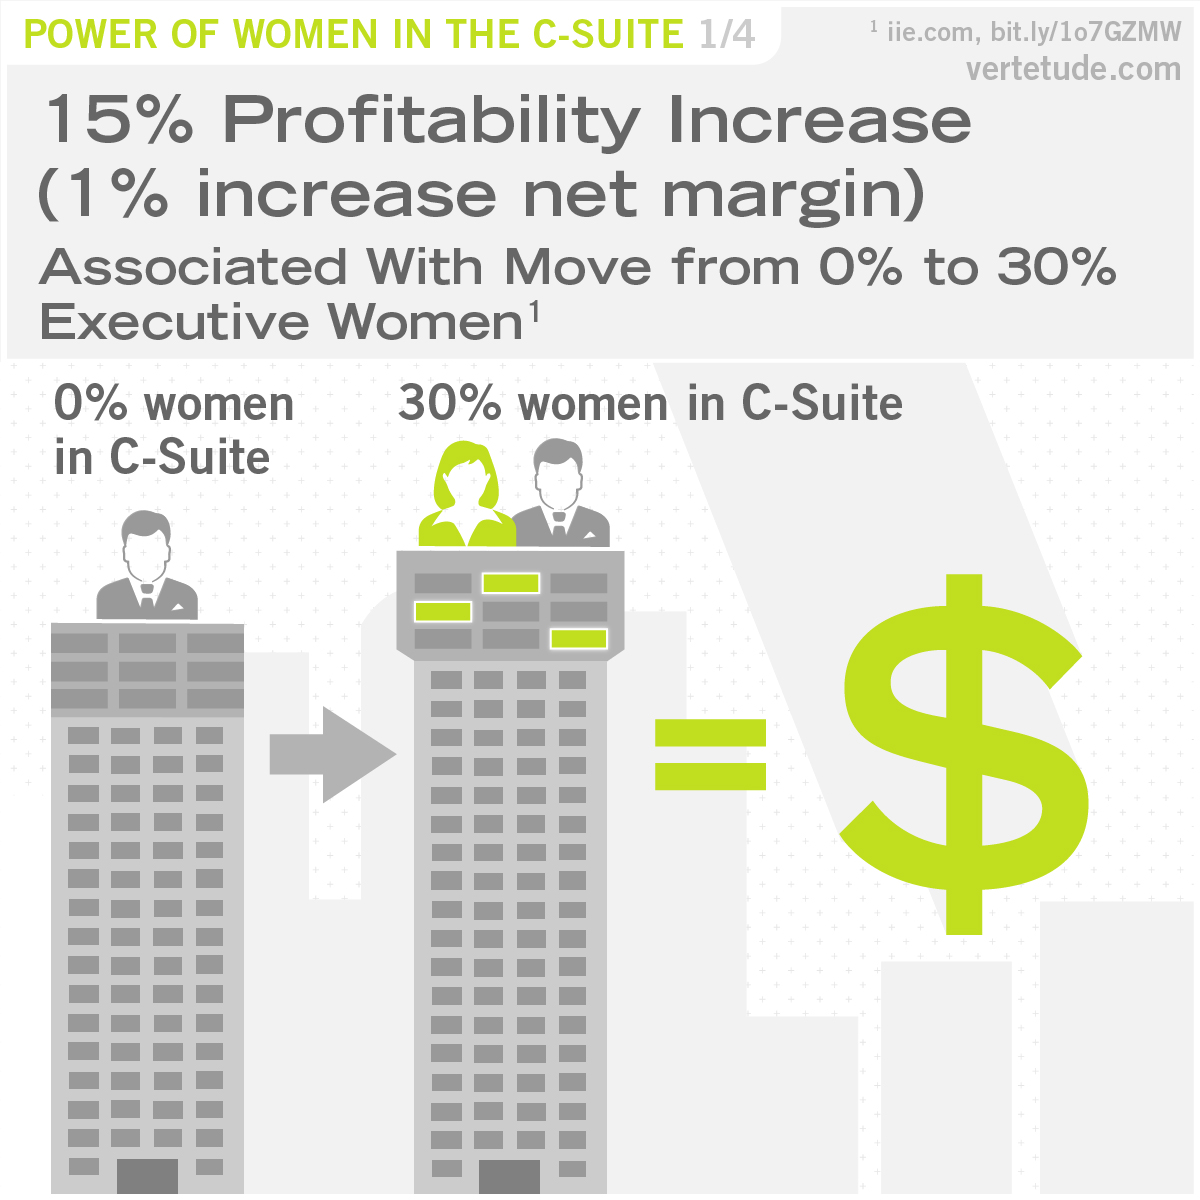 Infographic of profitability increase associated with more executive women